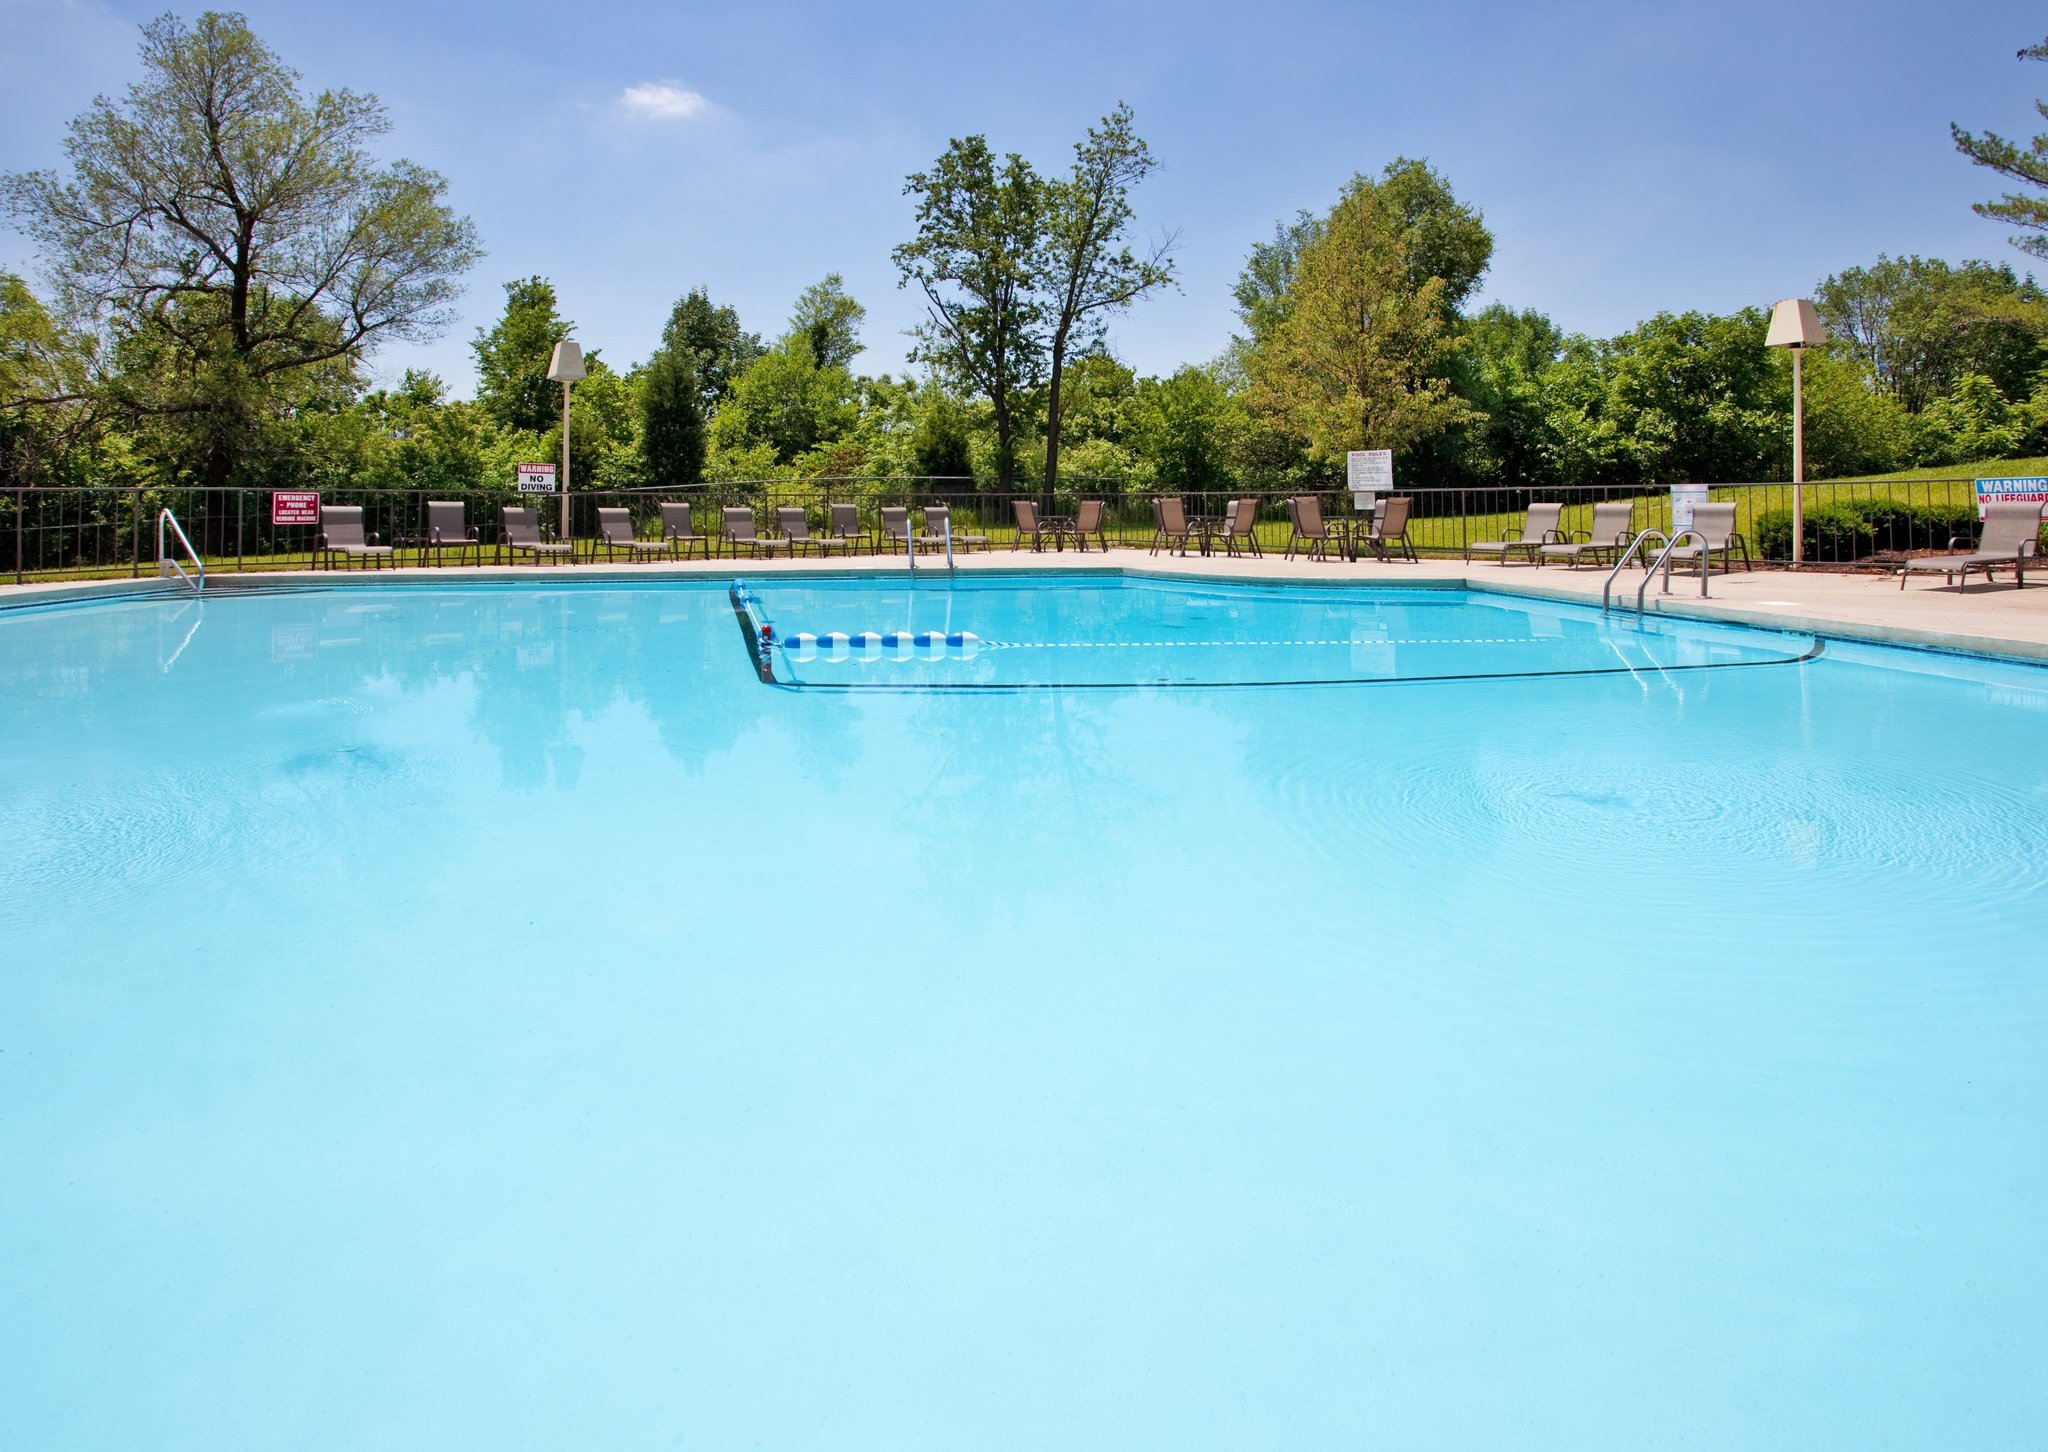 Outdoor Swi Swimming Pool Venue For Rent In Kansas City